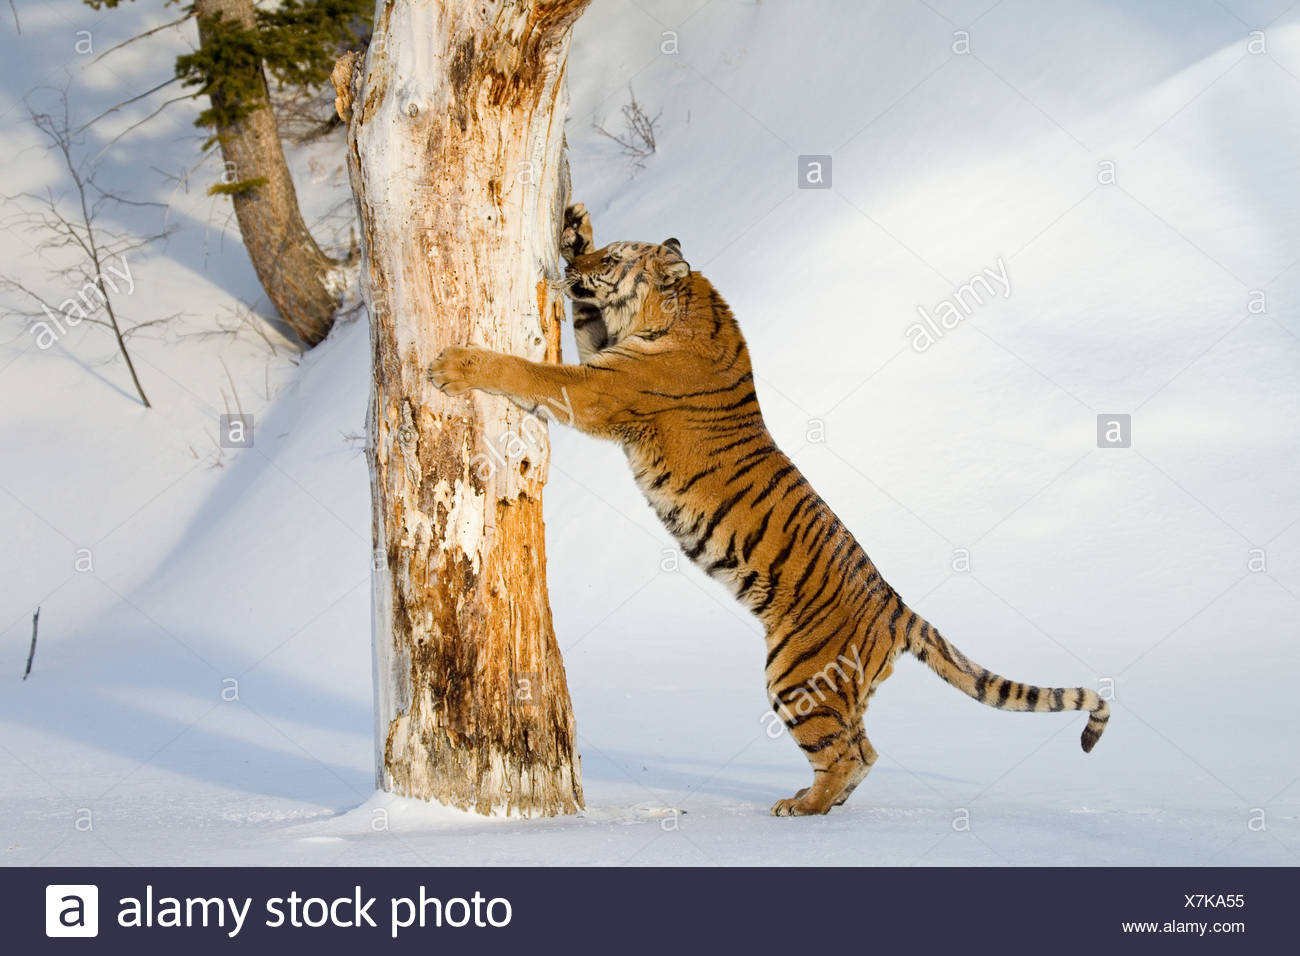 Siberian Tiger (Panthera tigris altaica) adult male, scratching tree trunk in snow, winter (captive) - Stock Image